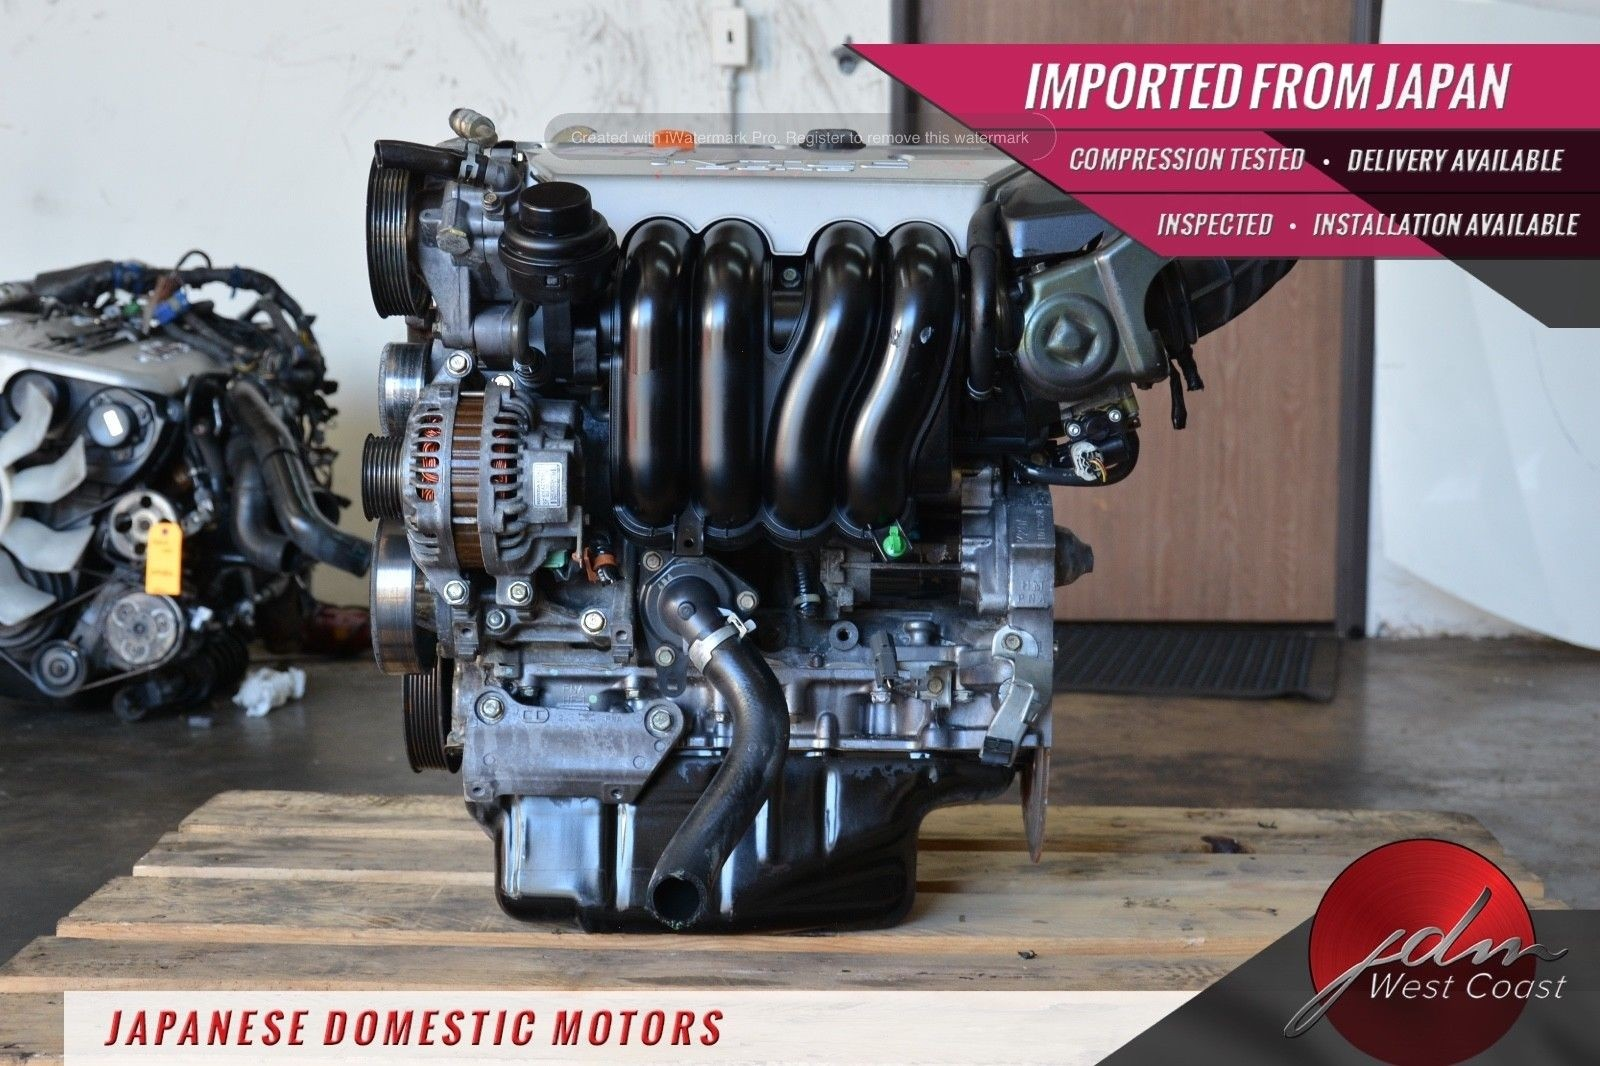 engine integra top package performance quality high complete details gsr acura royaljapanesemotors engines com jdm